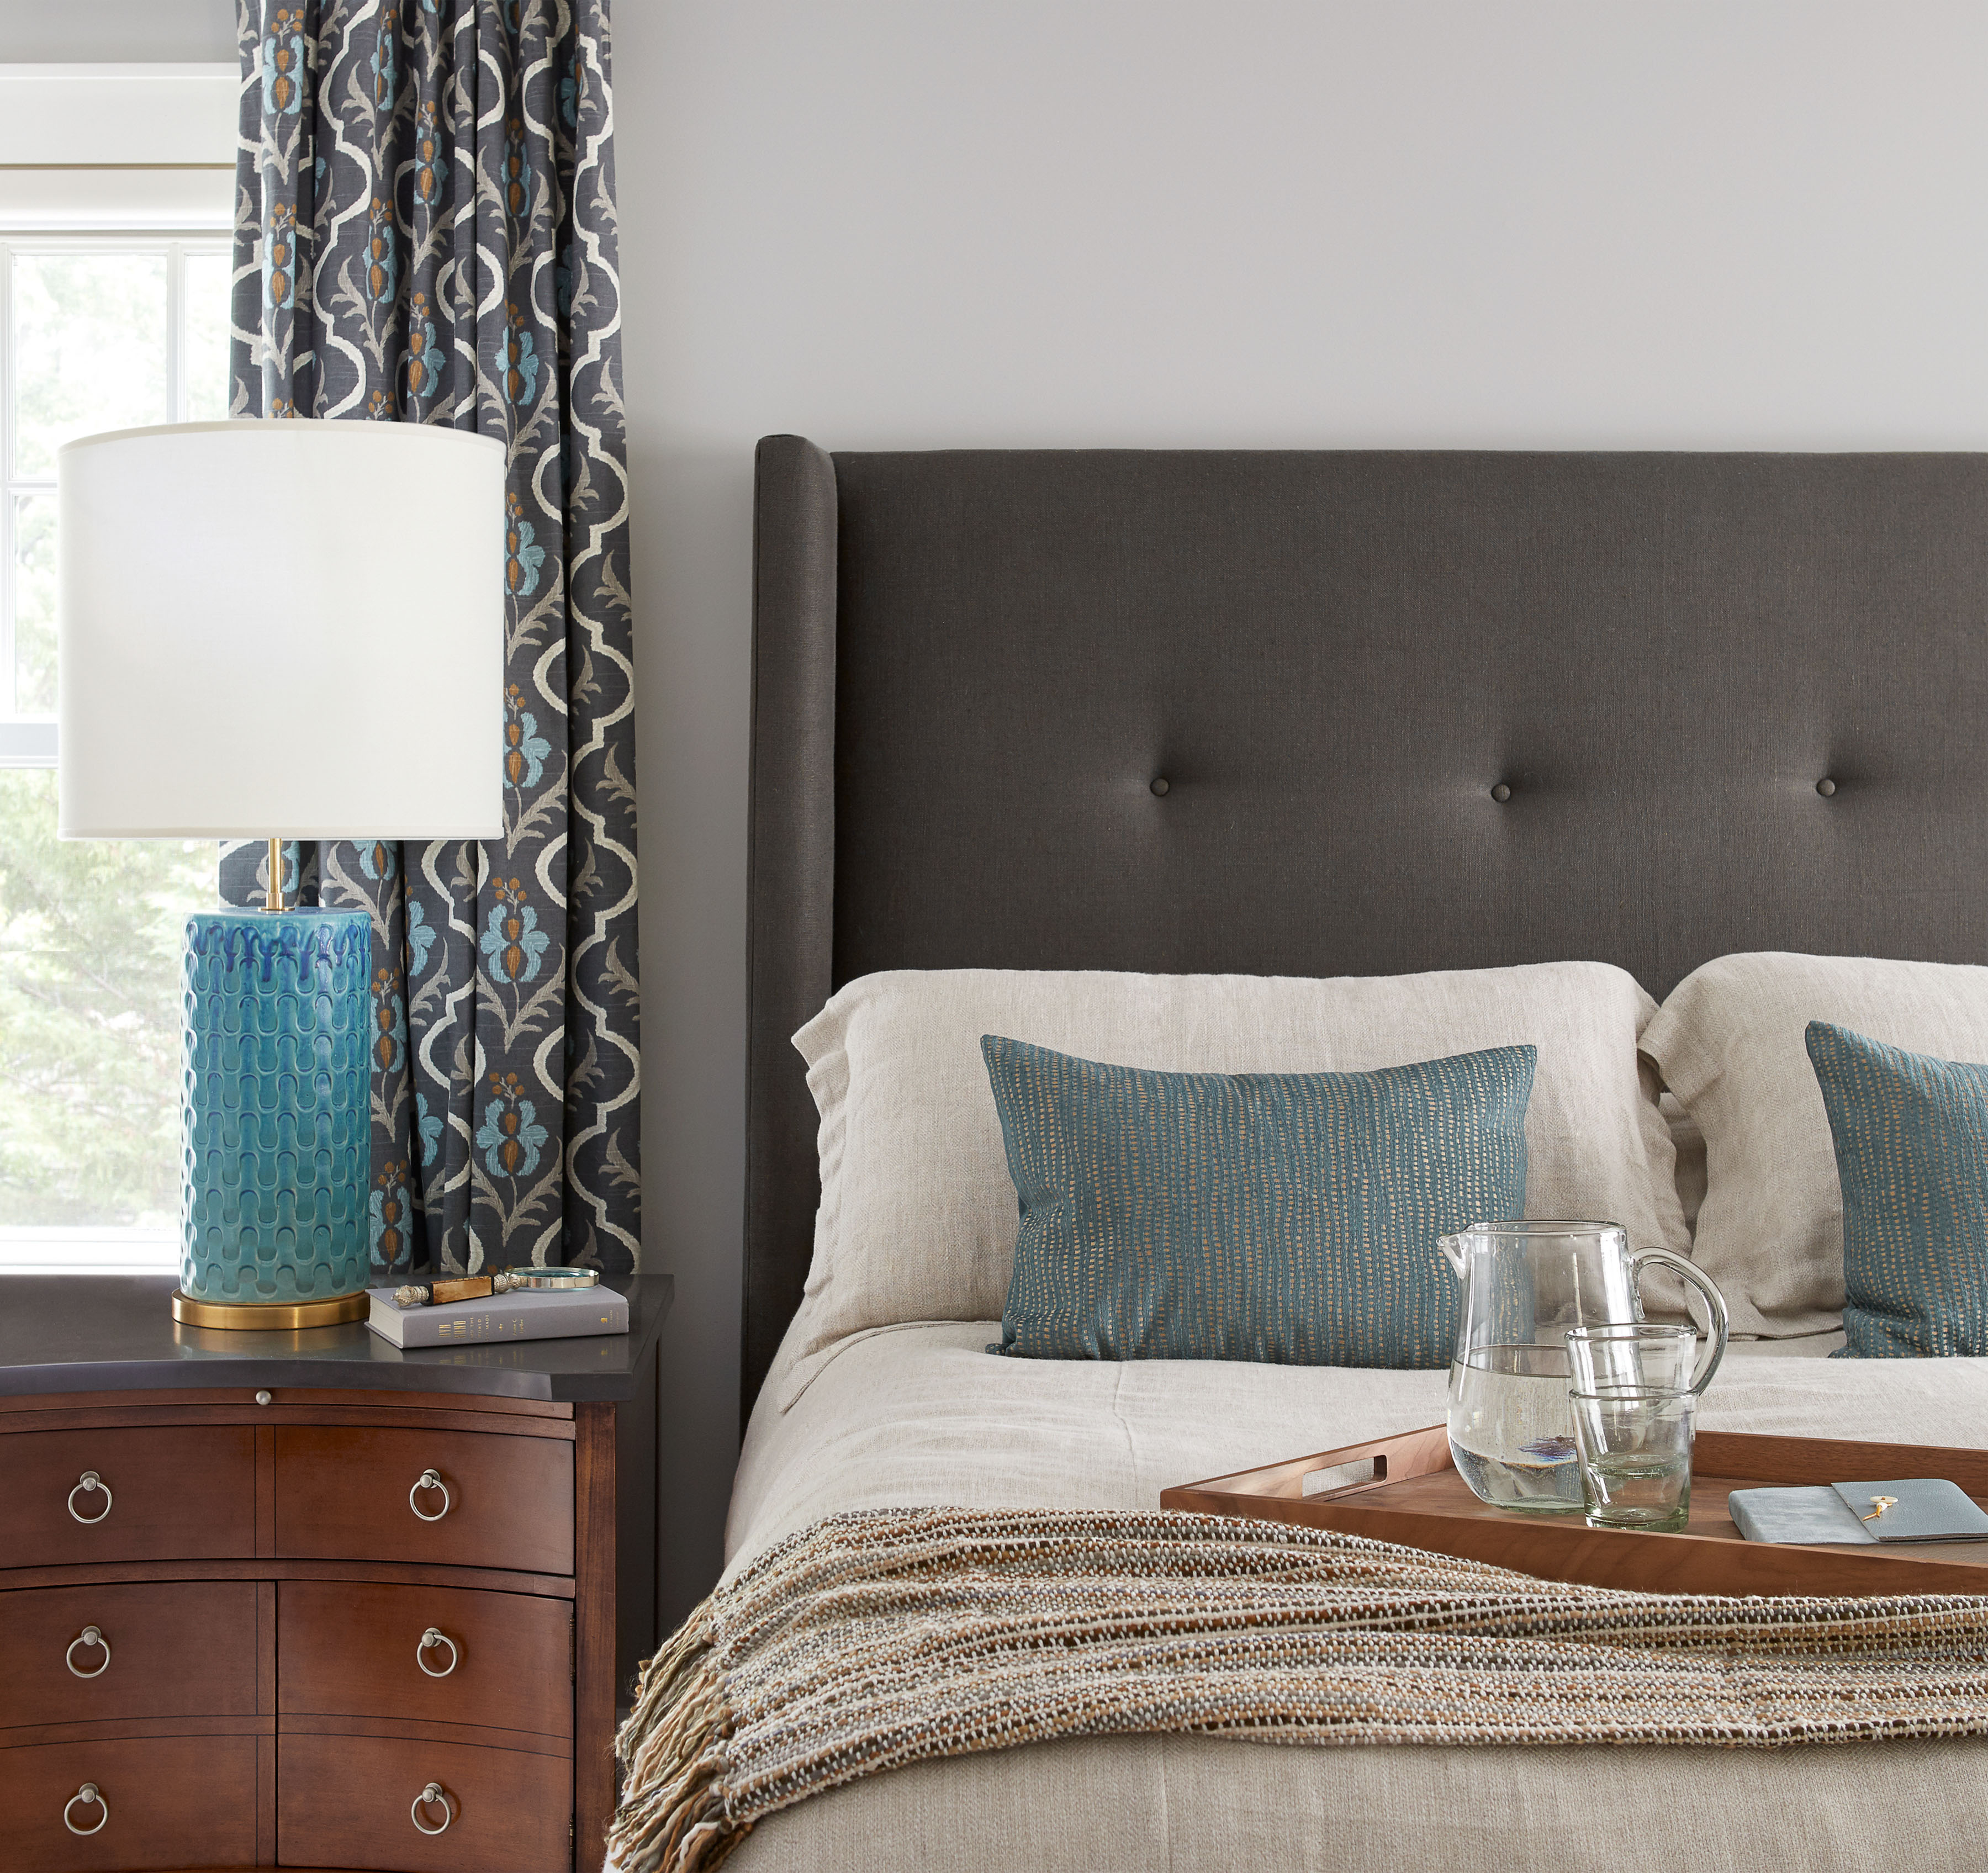 new jersey home tour bedroom with gray tufted headboard